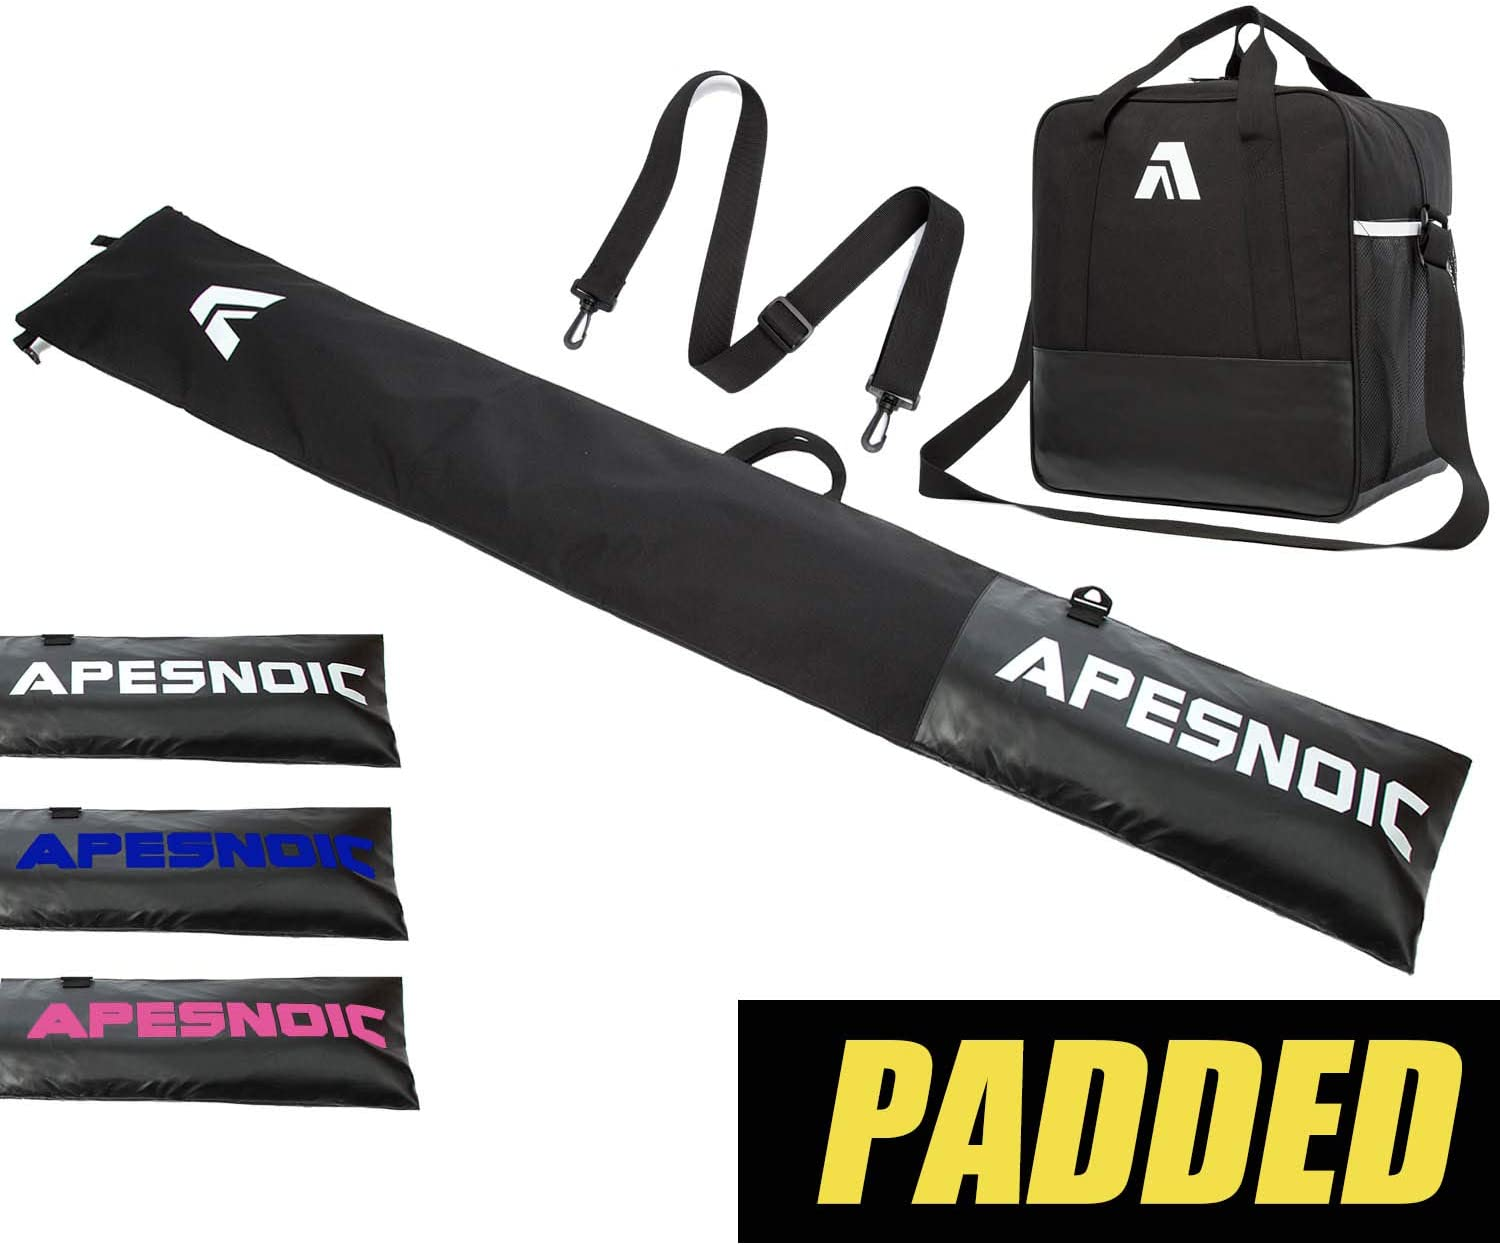 APESNOIC Padded Ski Bag and Boot Bag Combo,Store Transport Skis Up to 195 cm and Boots Up to Size 13, Two-Piece Water-Resistant Ski Travel Bags.